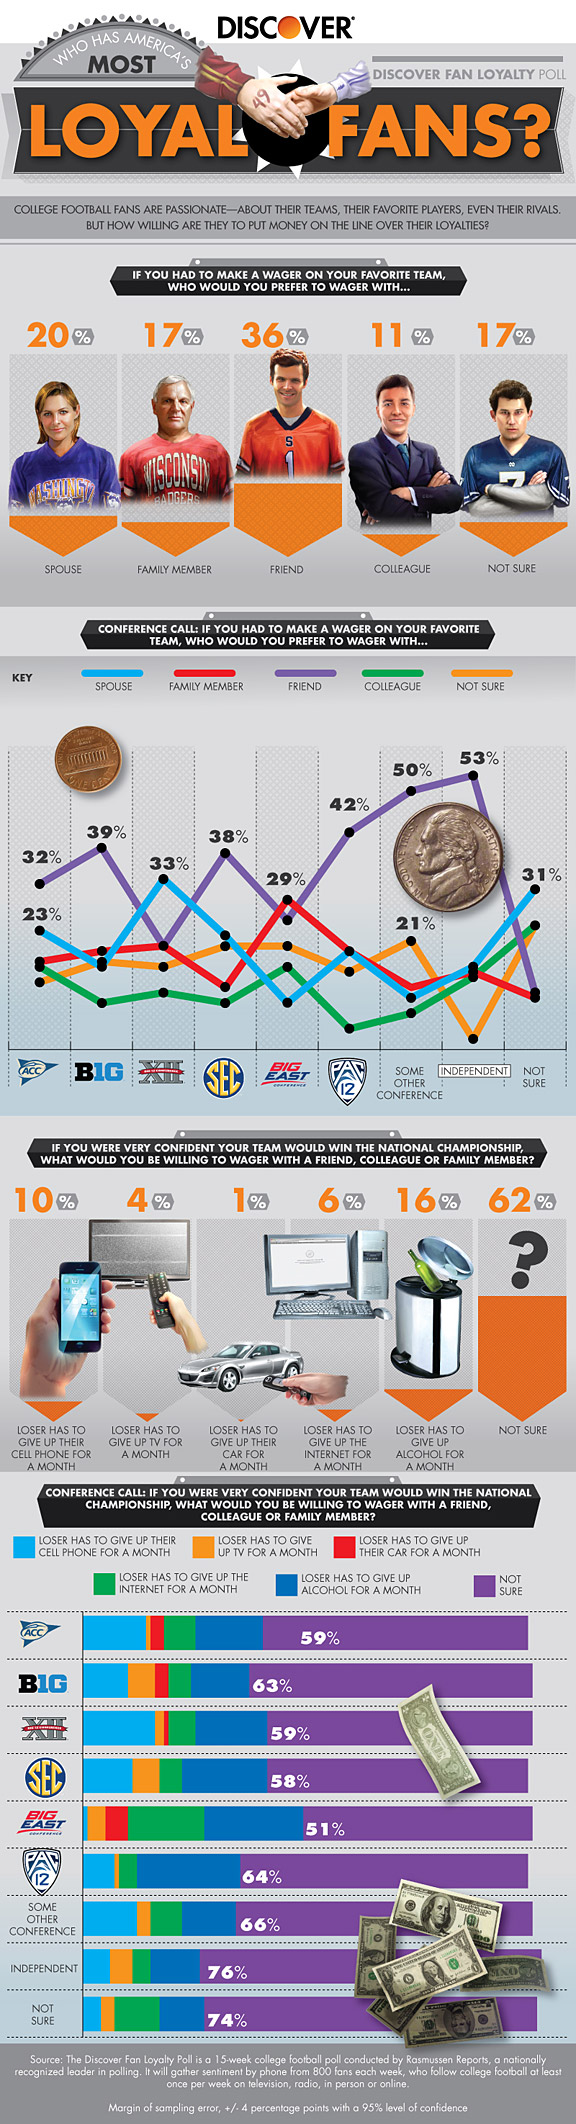 Discover fan infographic on college football friendly wagering